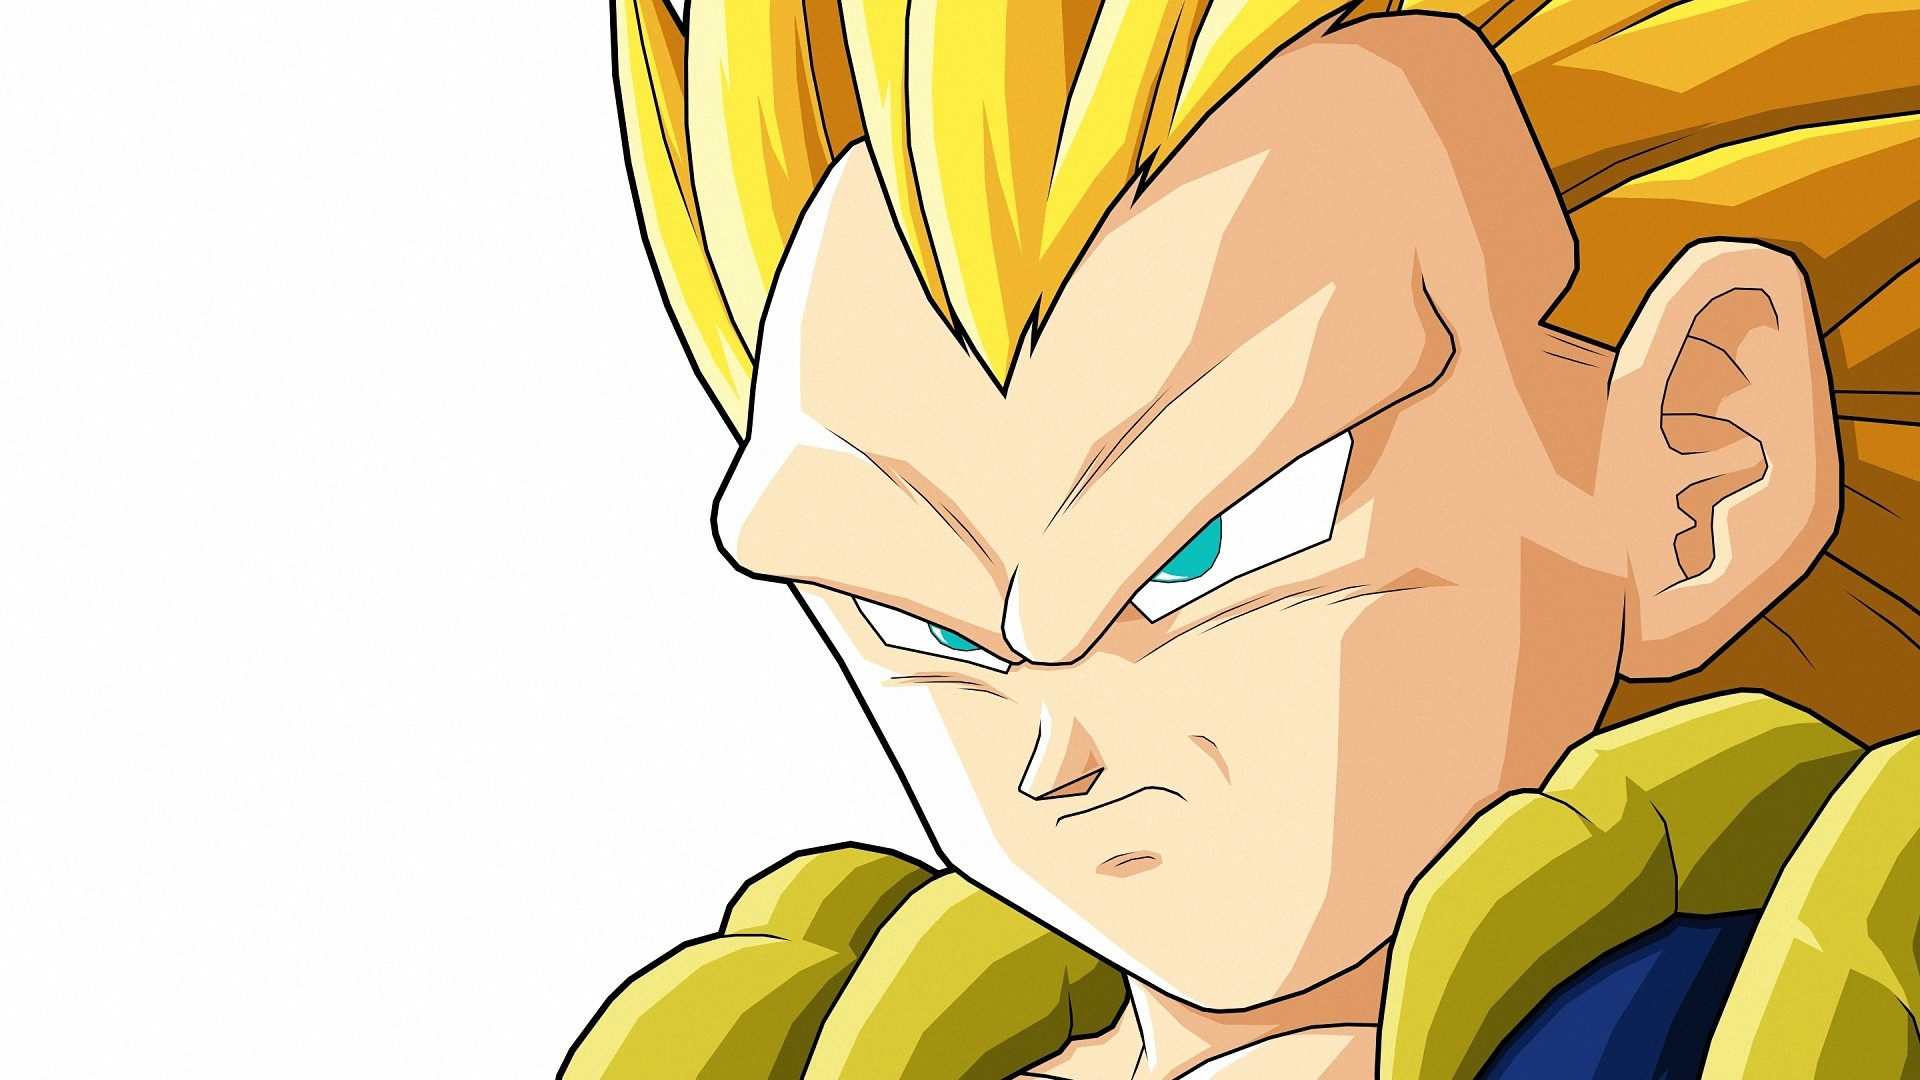 Res: 1920x1080,  gogeta face anime boy wallpapers full HD 1080p desktop backgrounds